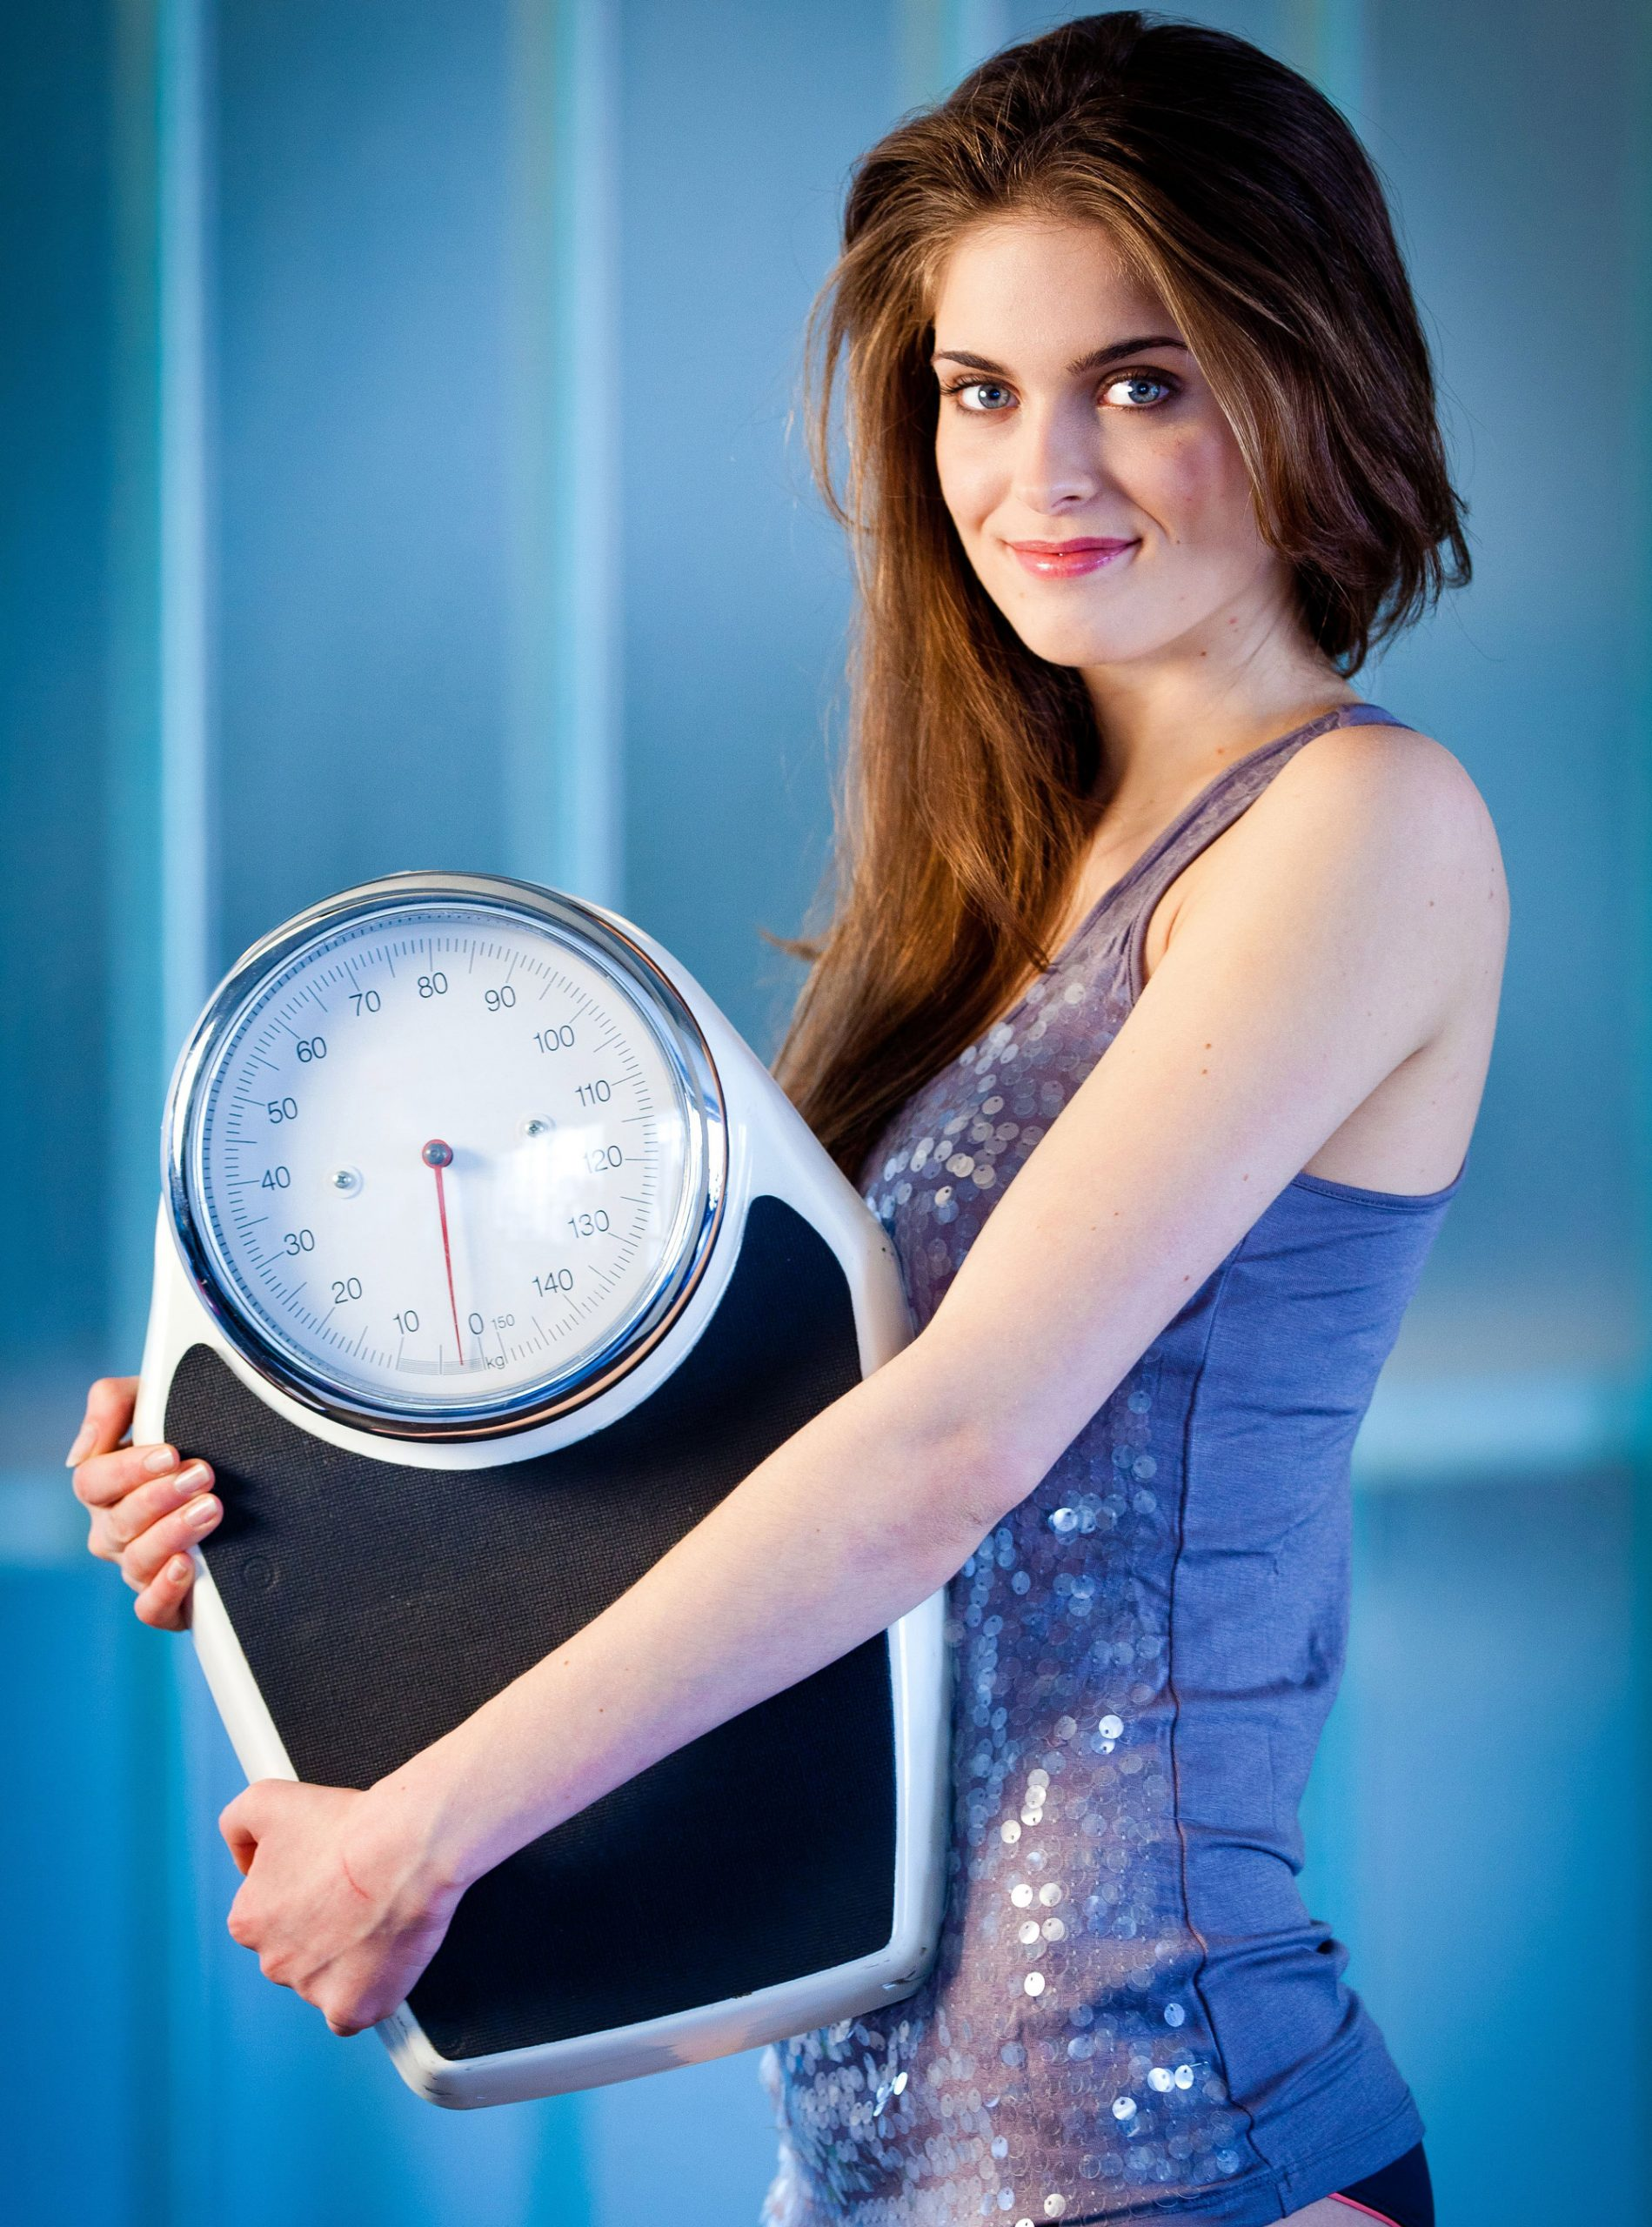 motivating diet tips-diet and wellbeing-woman and home